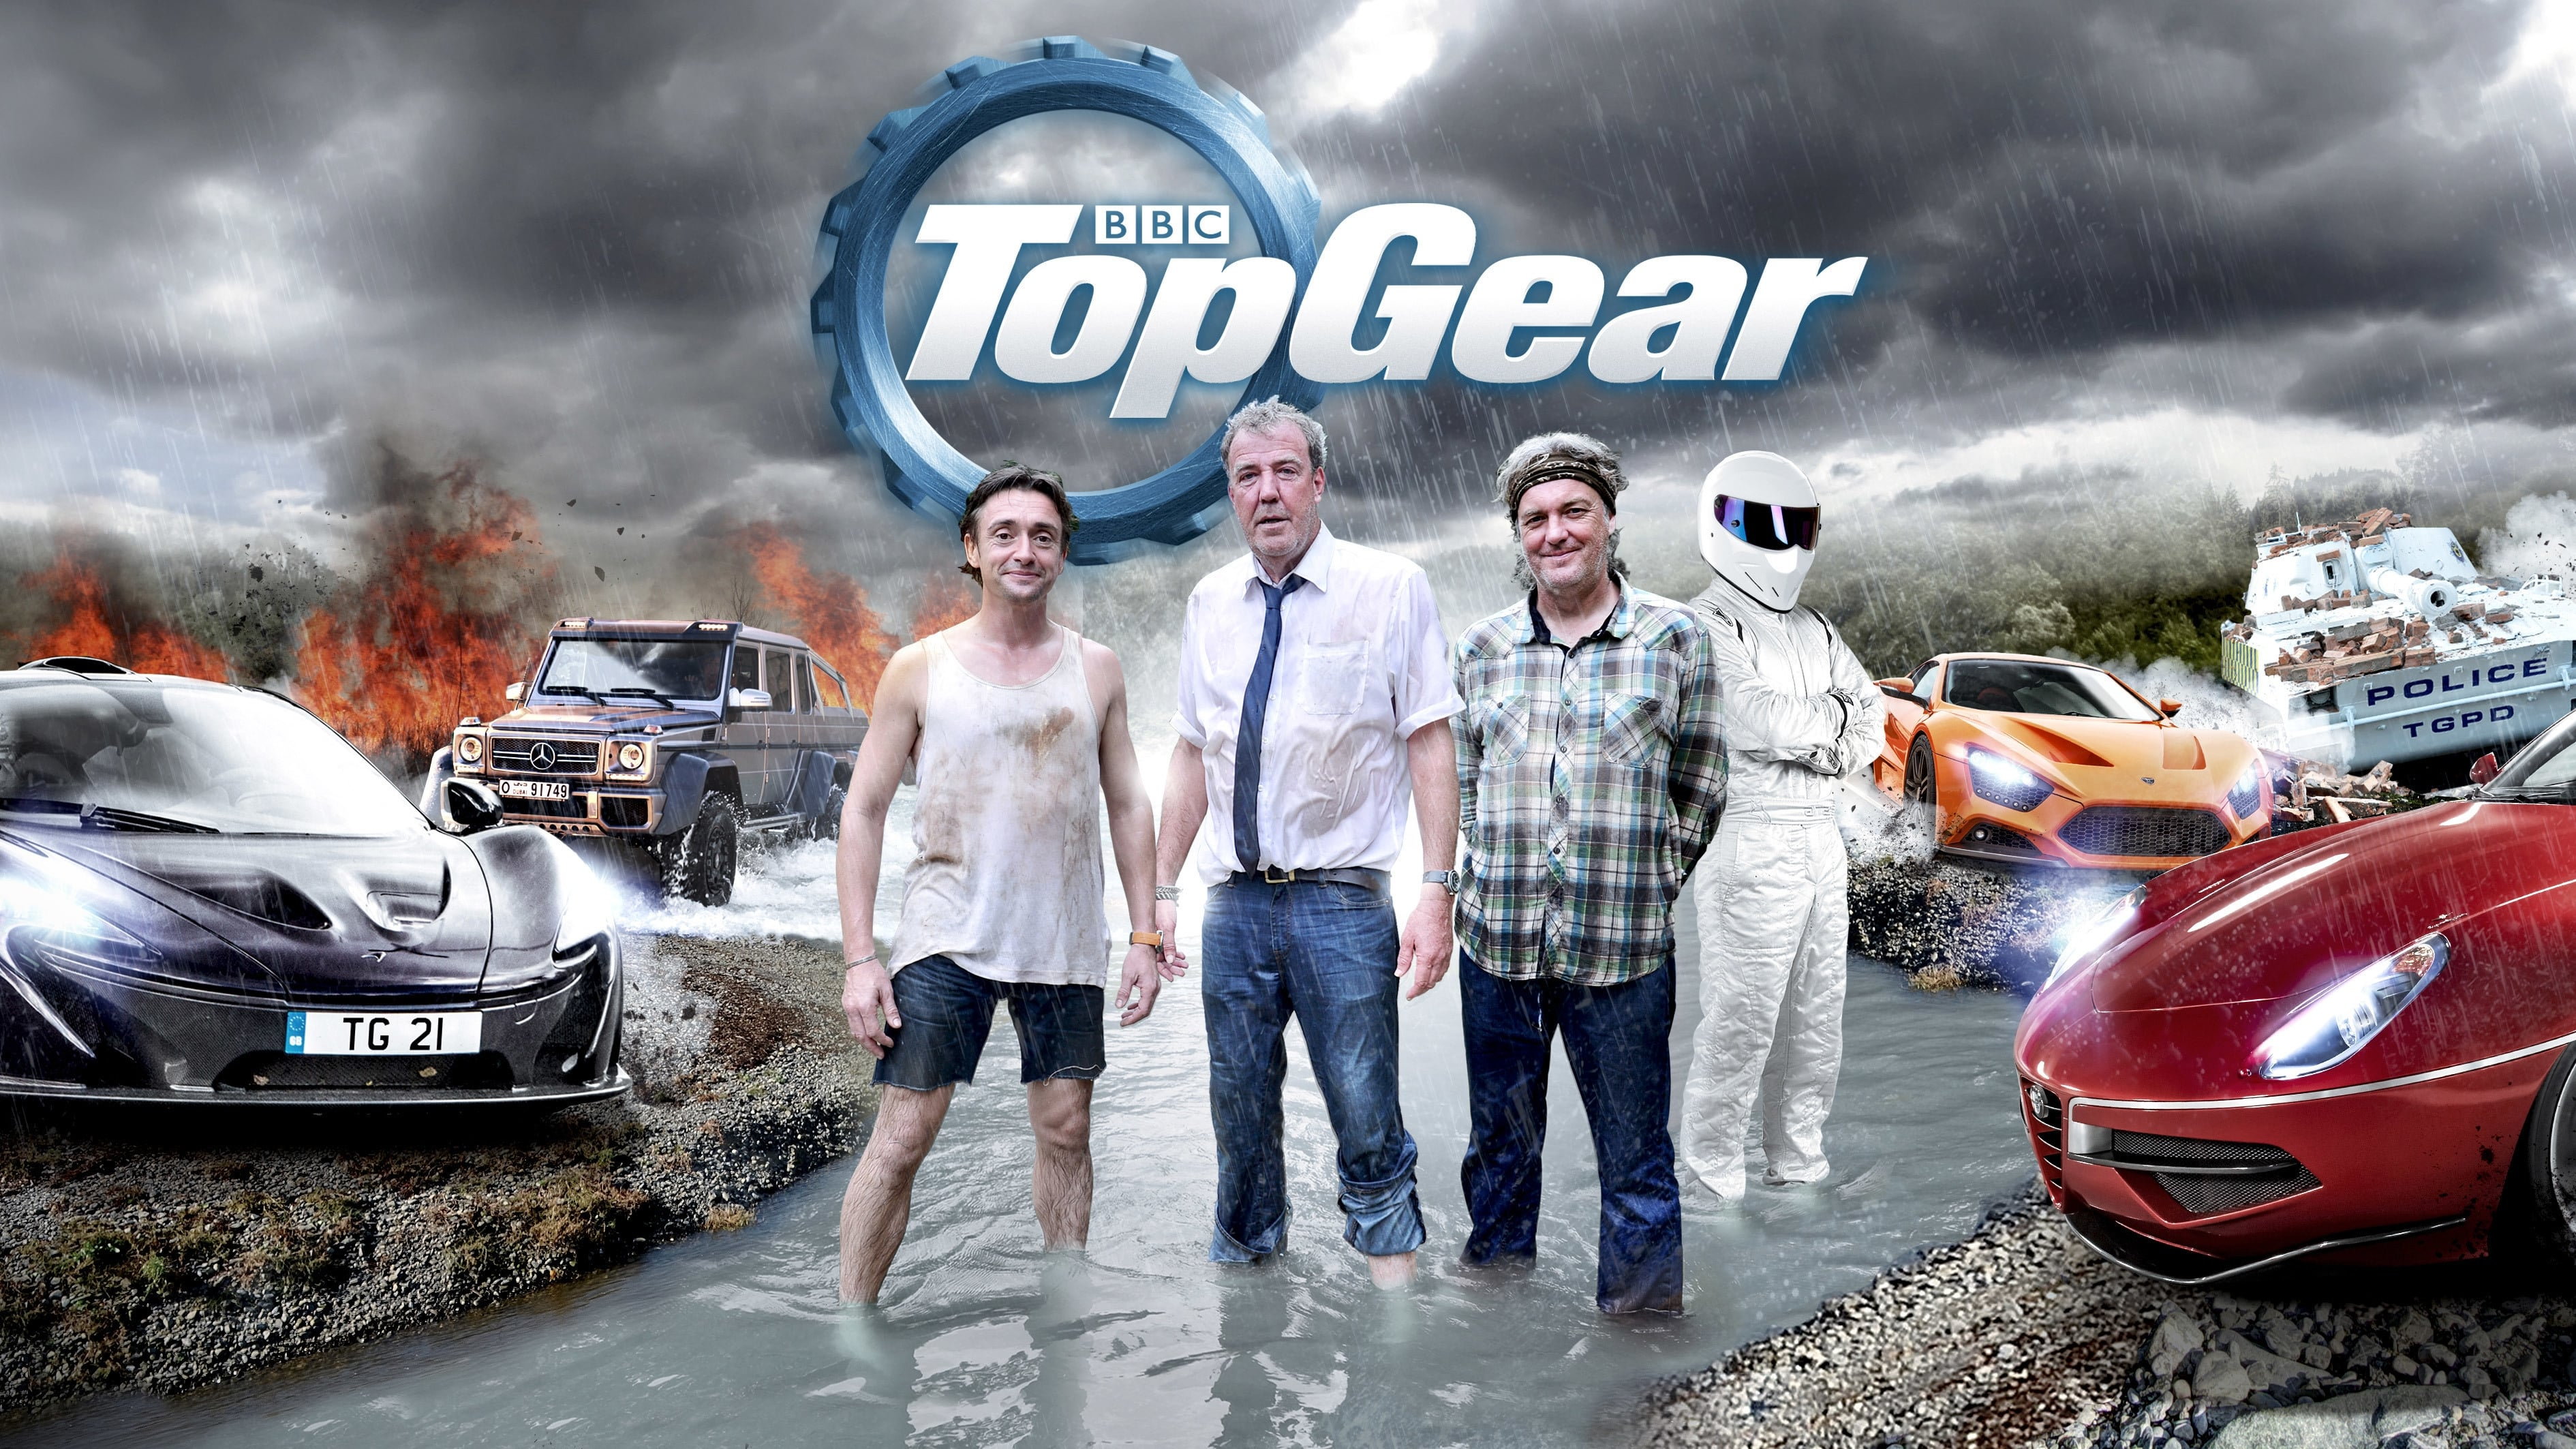 Top Gear - Series 6